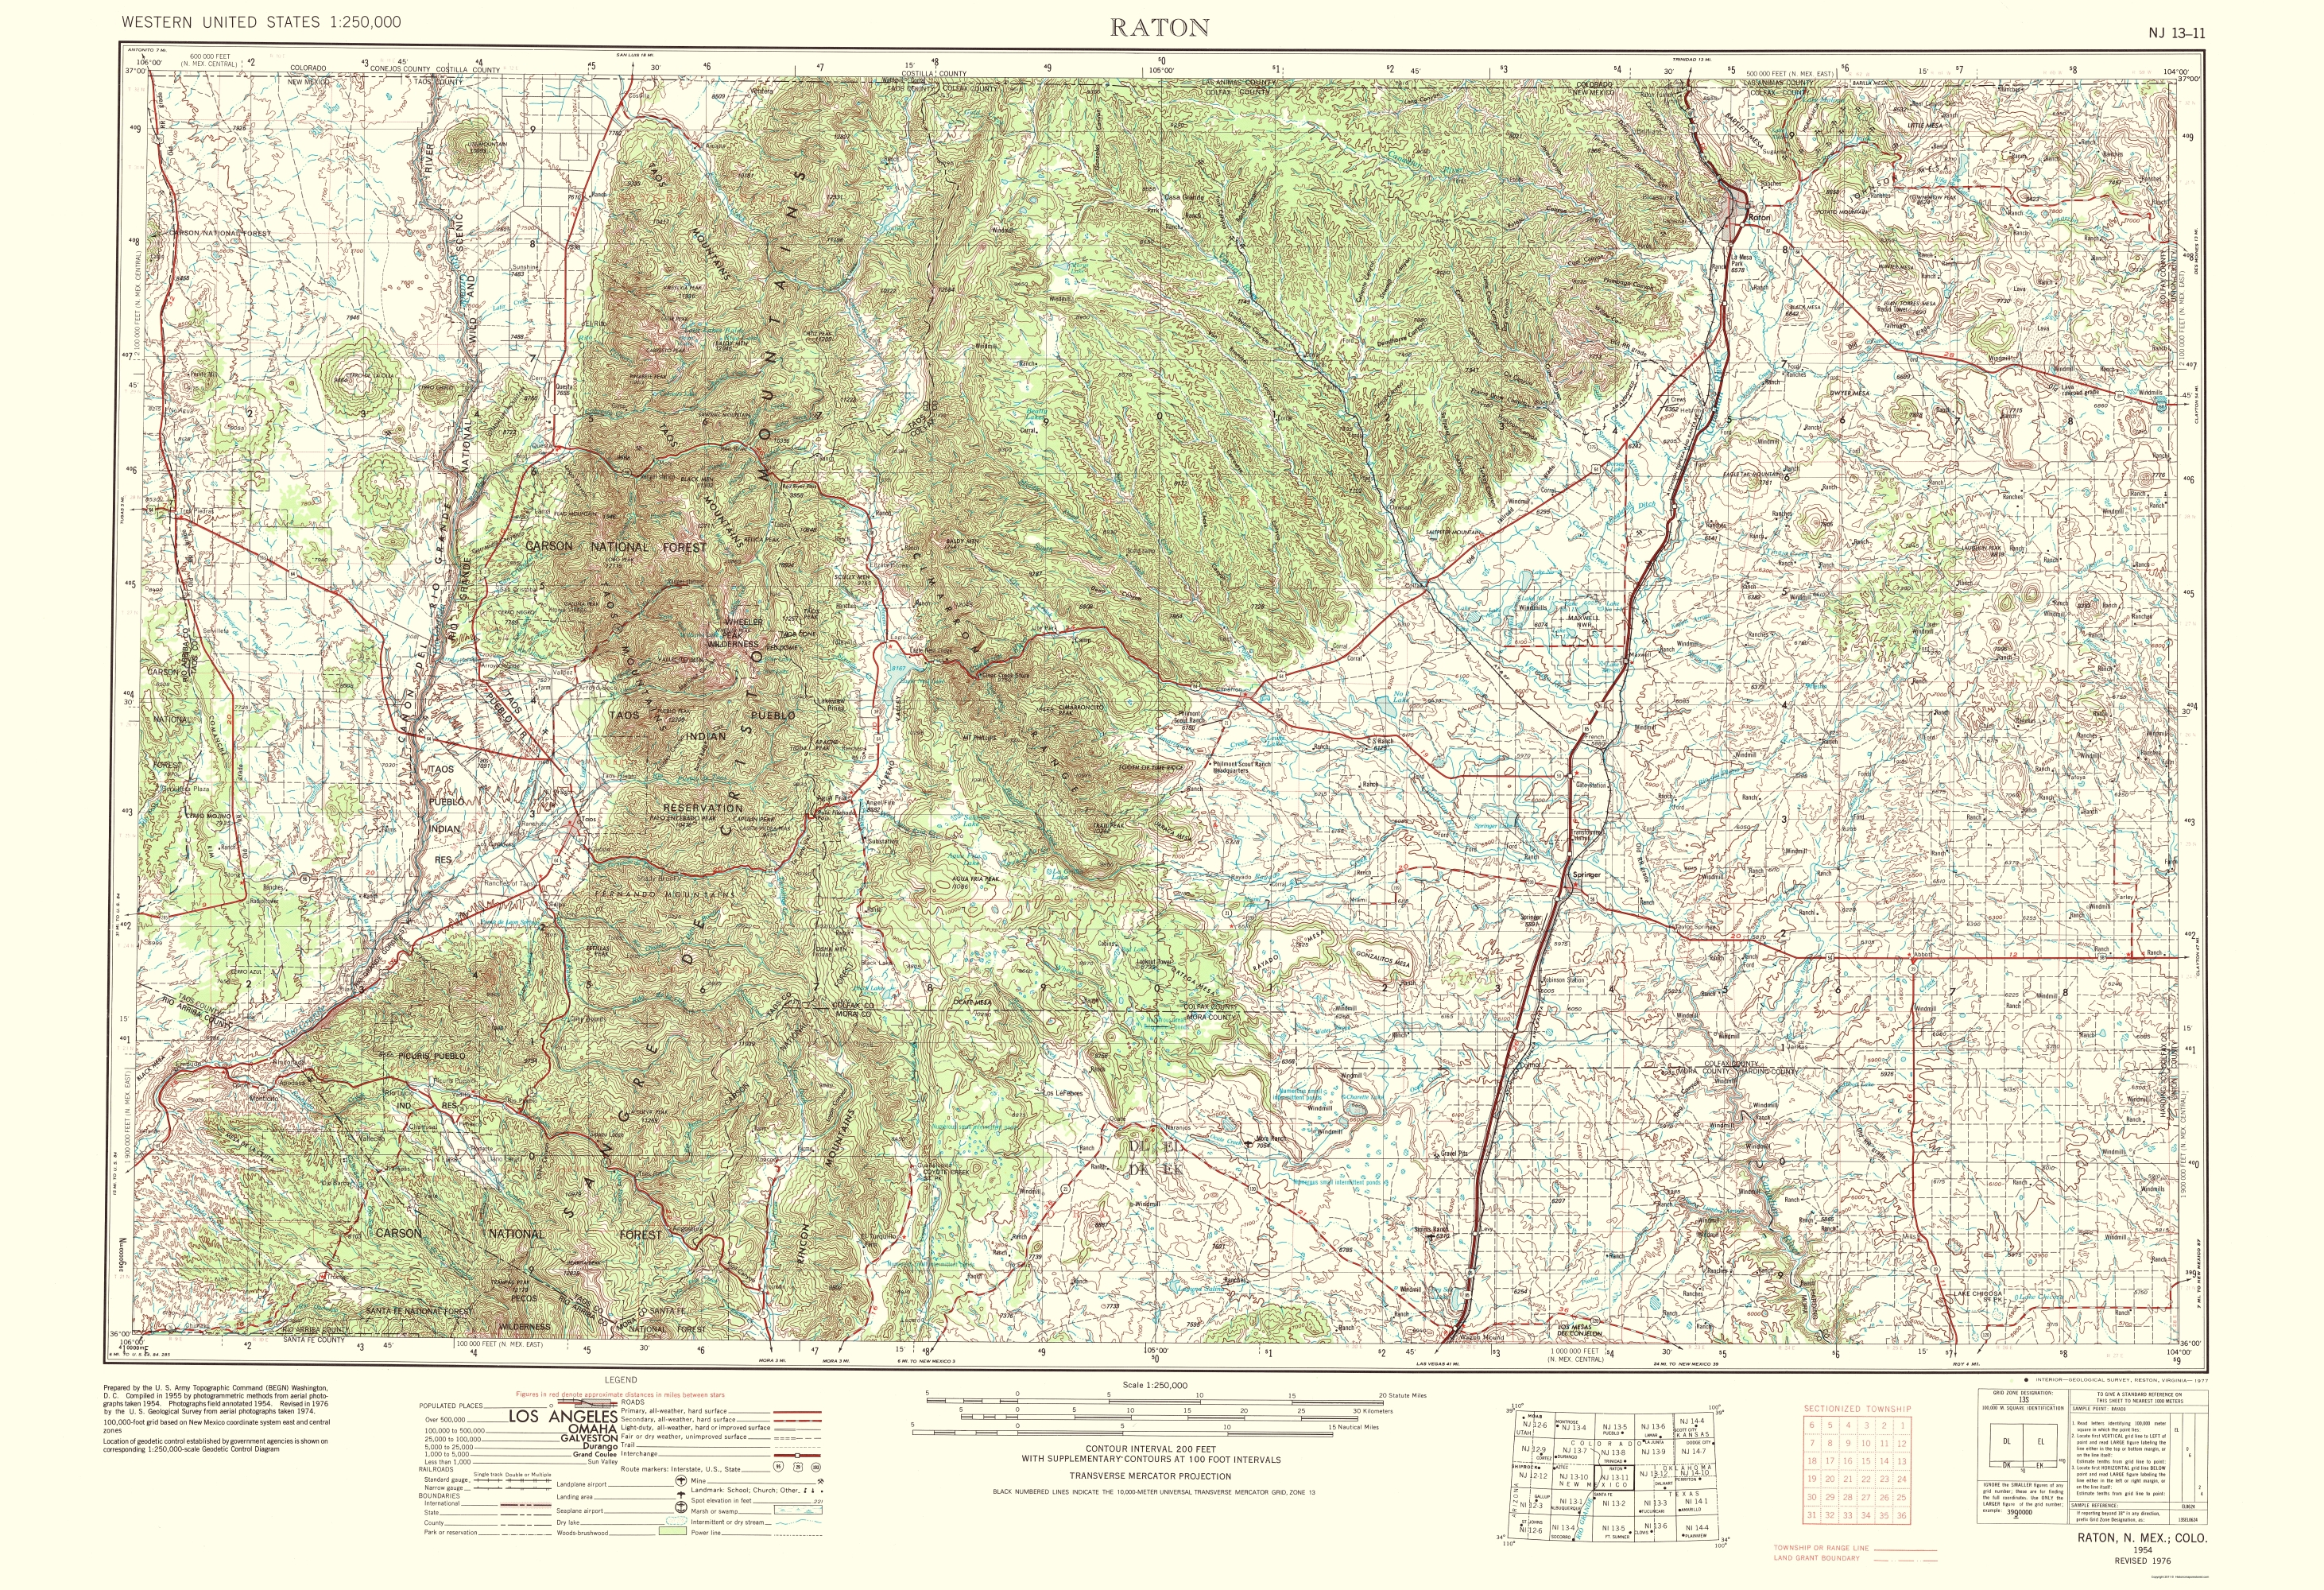 Old Topographical Map Raton Colorado New Mexico - New mexico elevation map